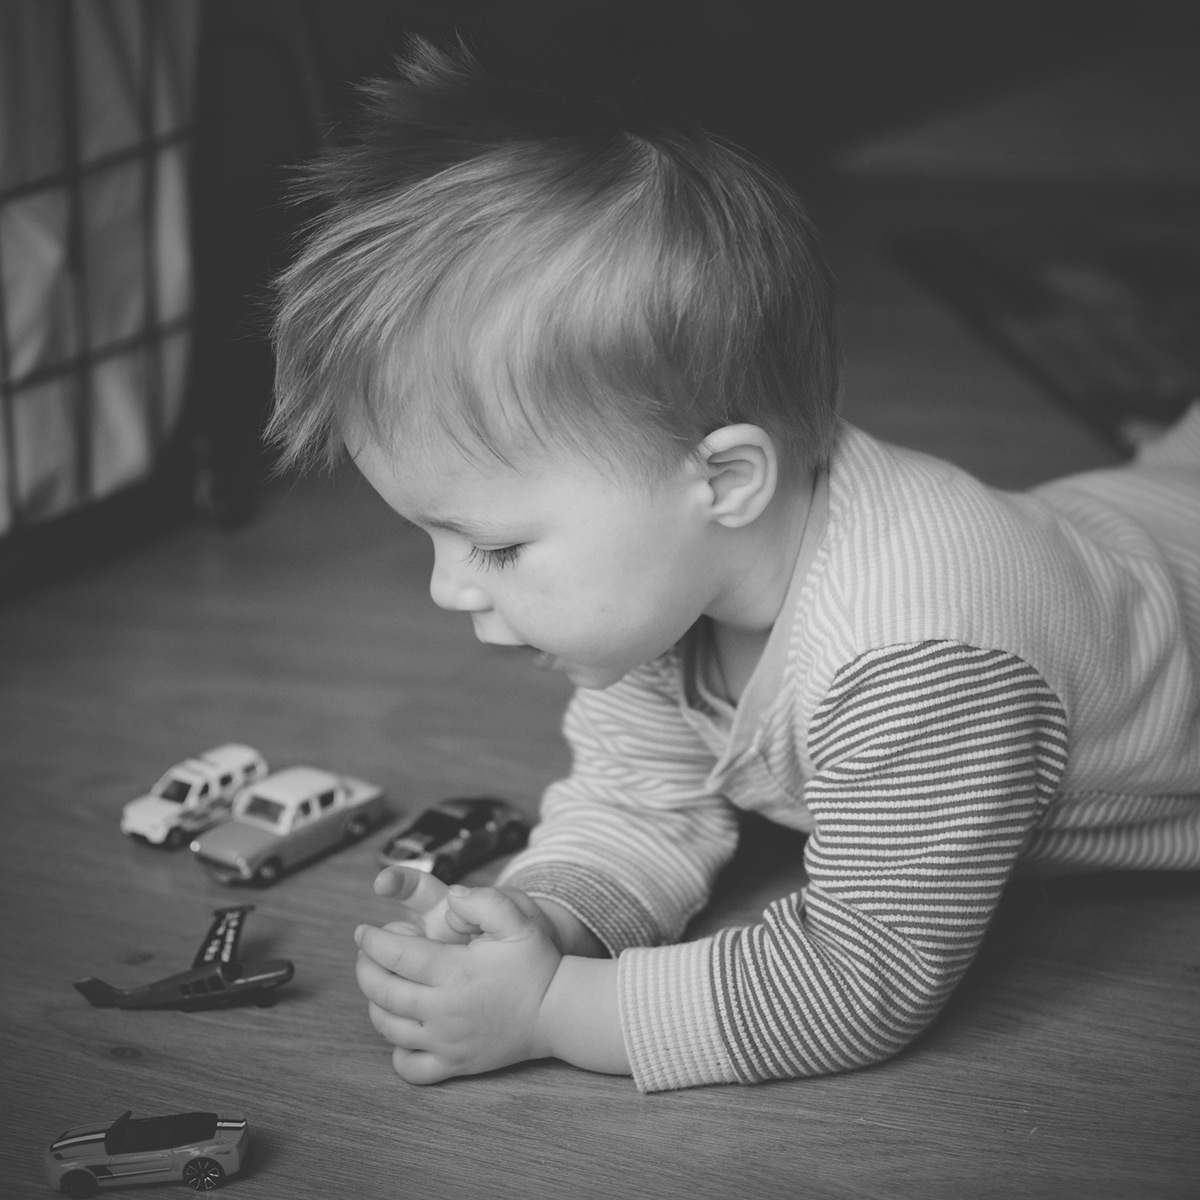 Our month in insta-snaps; April 2016 - Toddler wearing Little Bird by Jools Oliver onesie playing with toy cars with bed hair